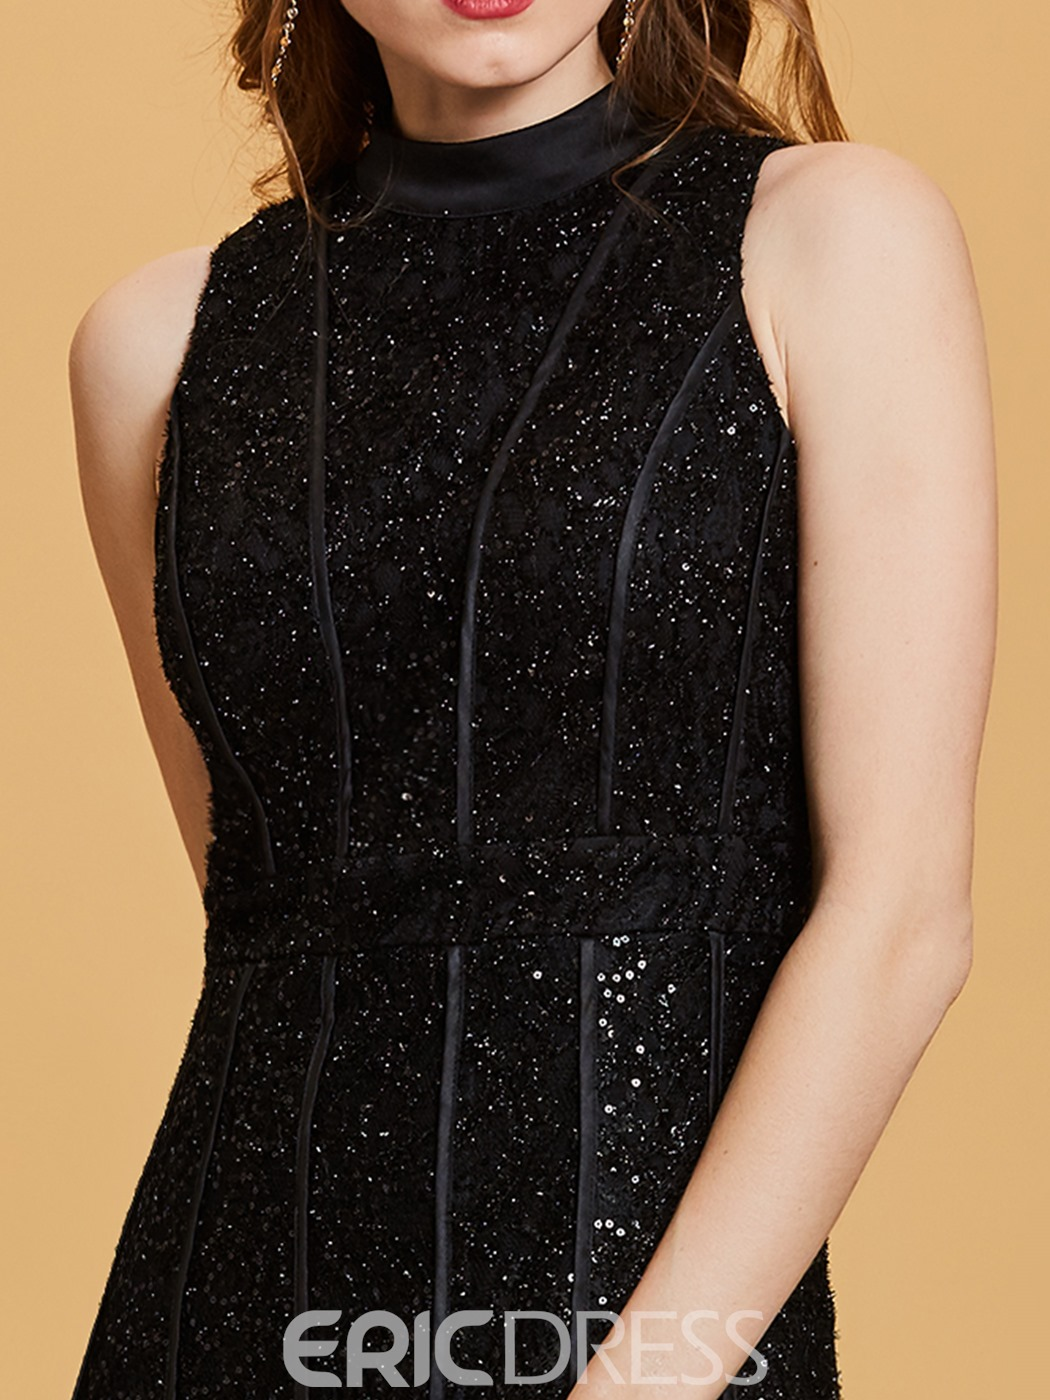 Ericdress Scoop Neck Sequins A Line Black Evening Dress